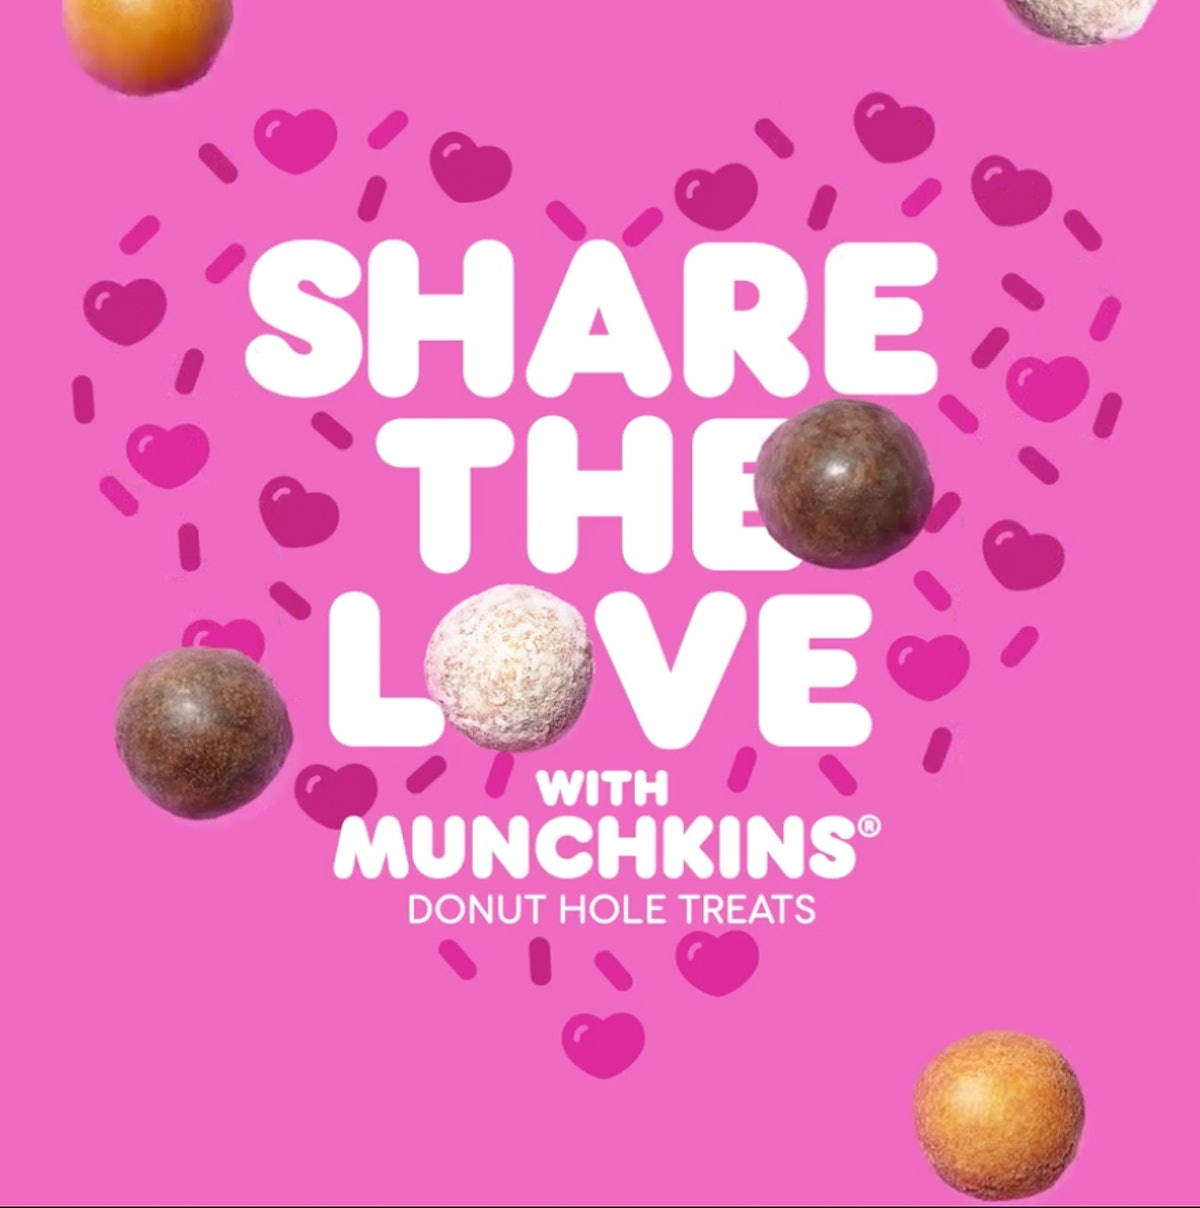 Dunkin's Valentine's Day 2020 Donuts include a $2 deal on Munchkin donut holes.